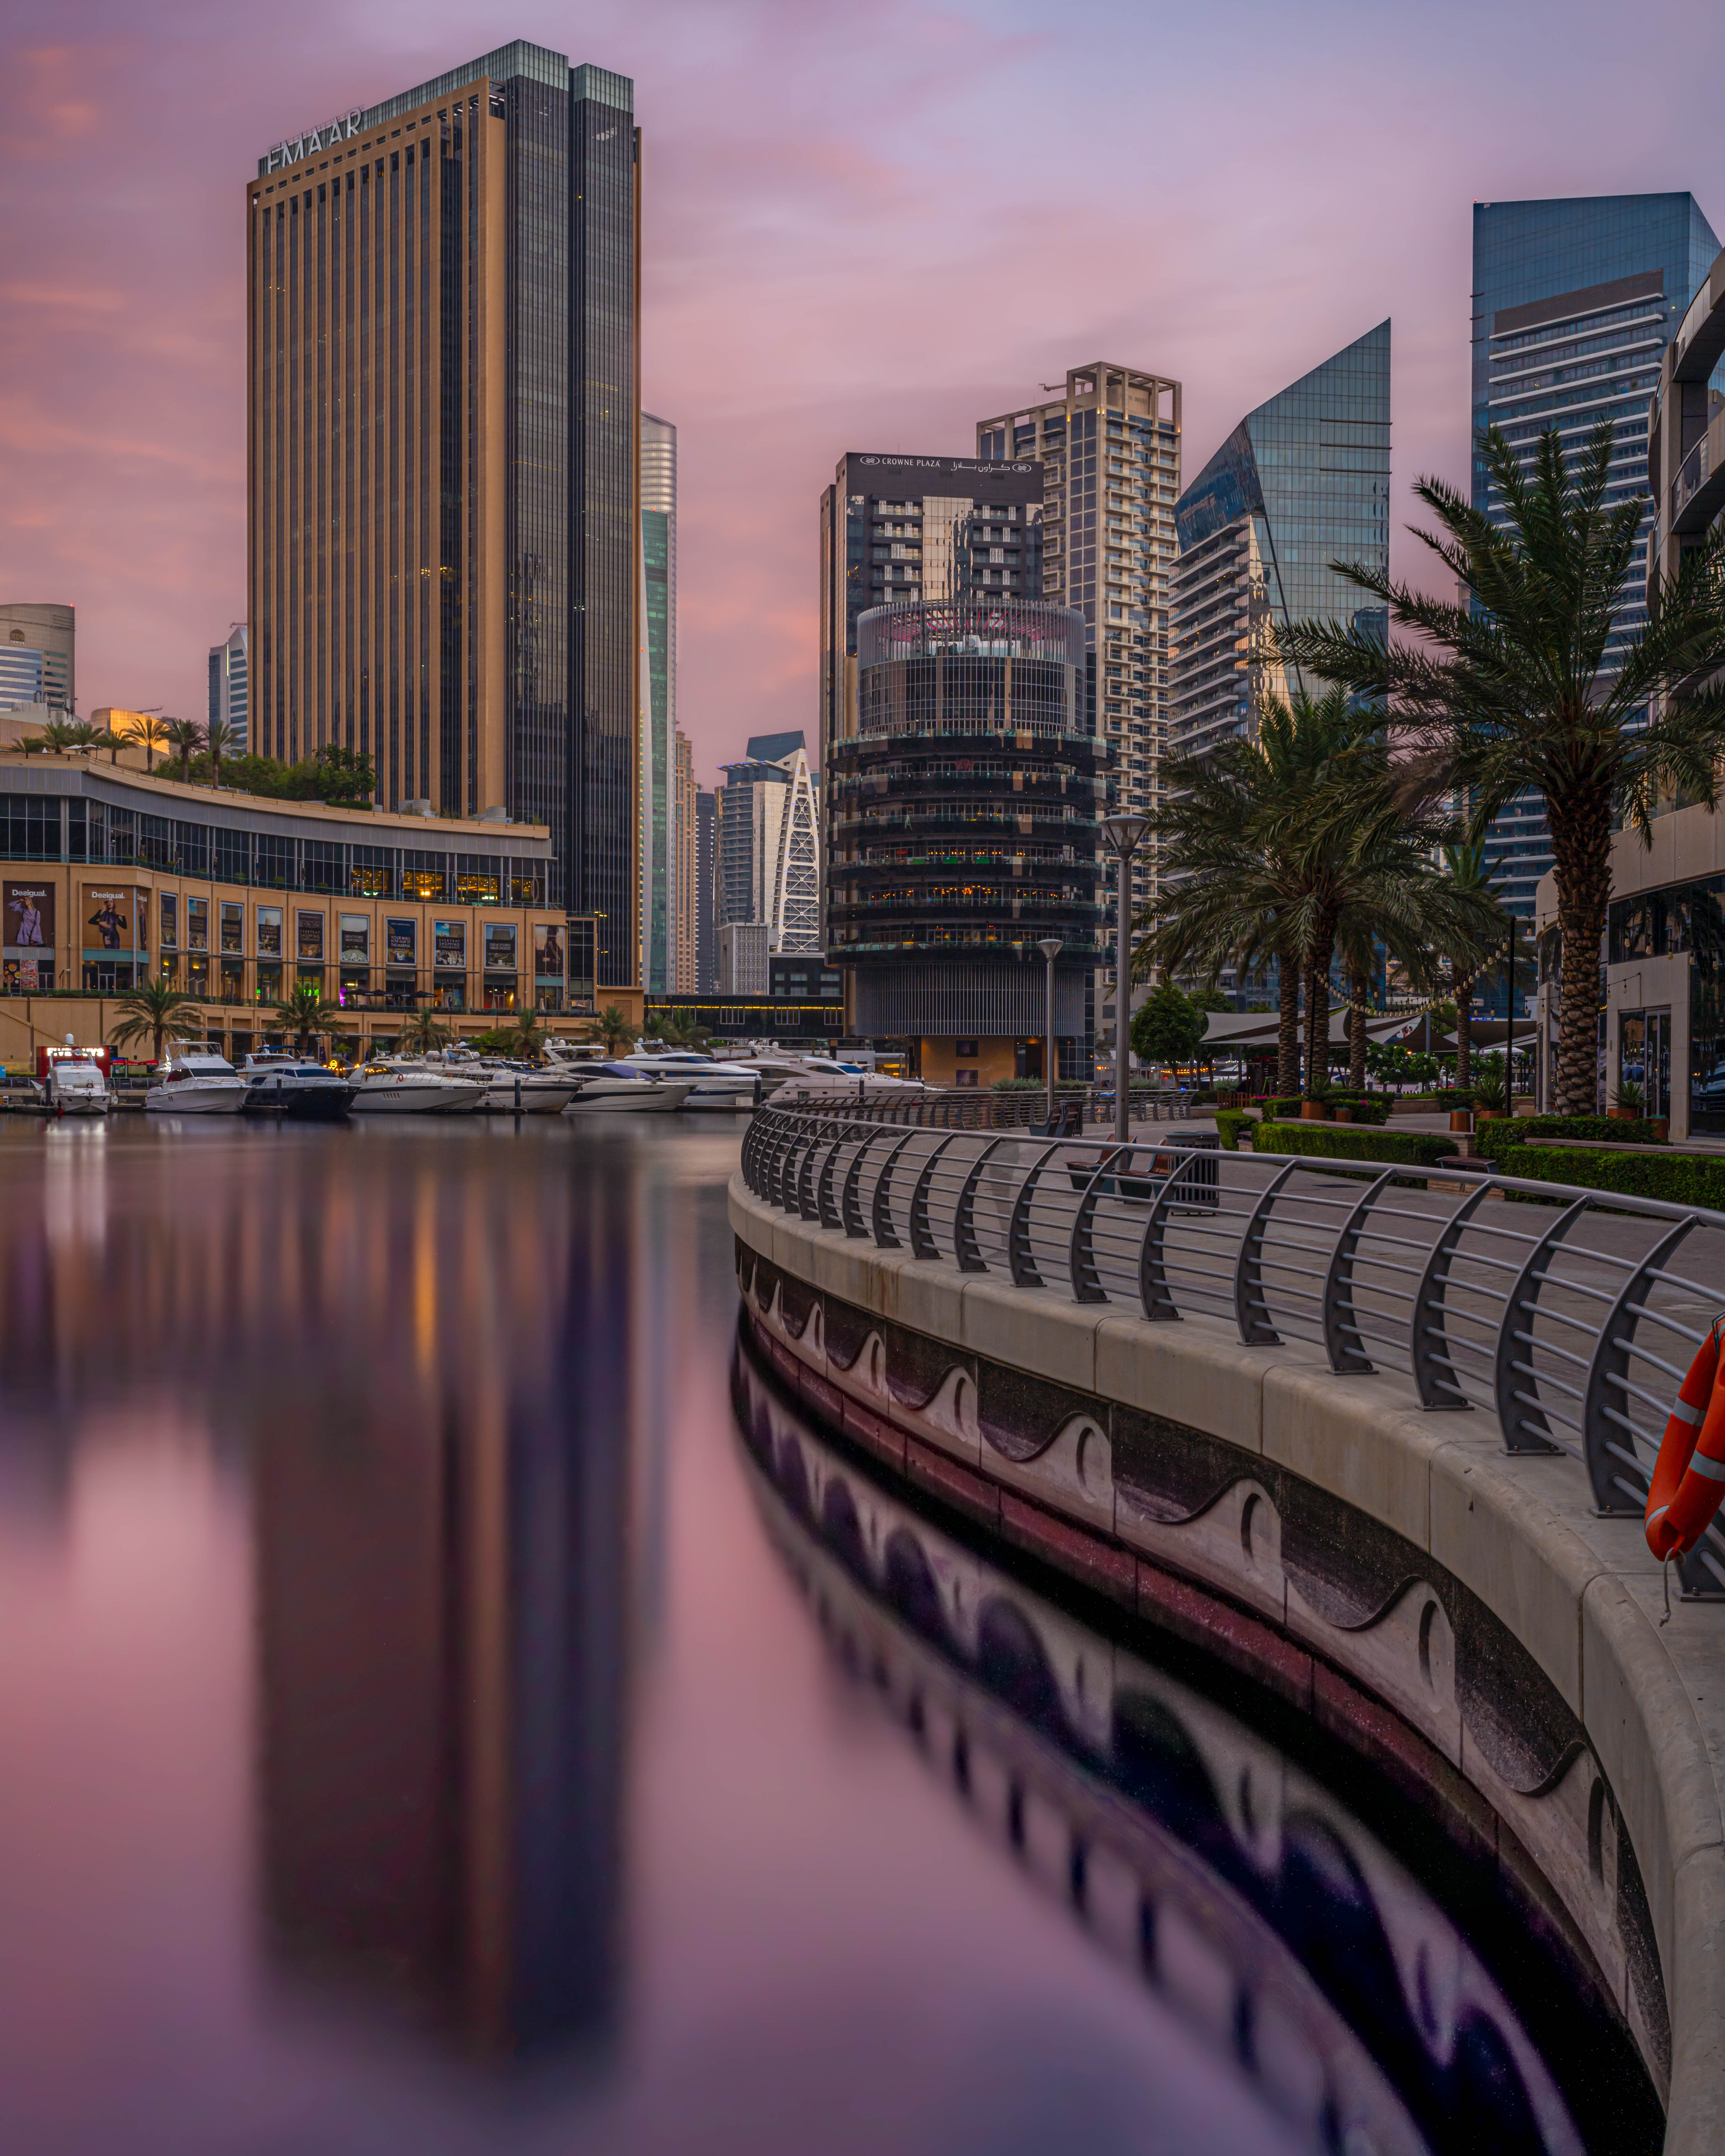 4. Dubai Marina Mall and Pier 7 from the promenade on the other side of the water.